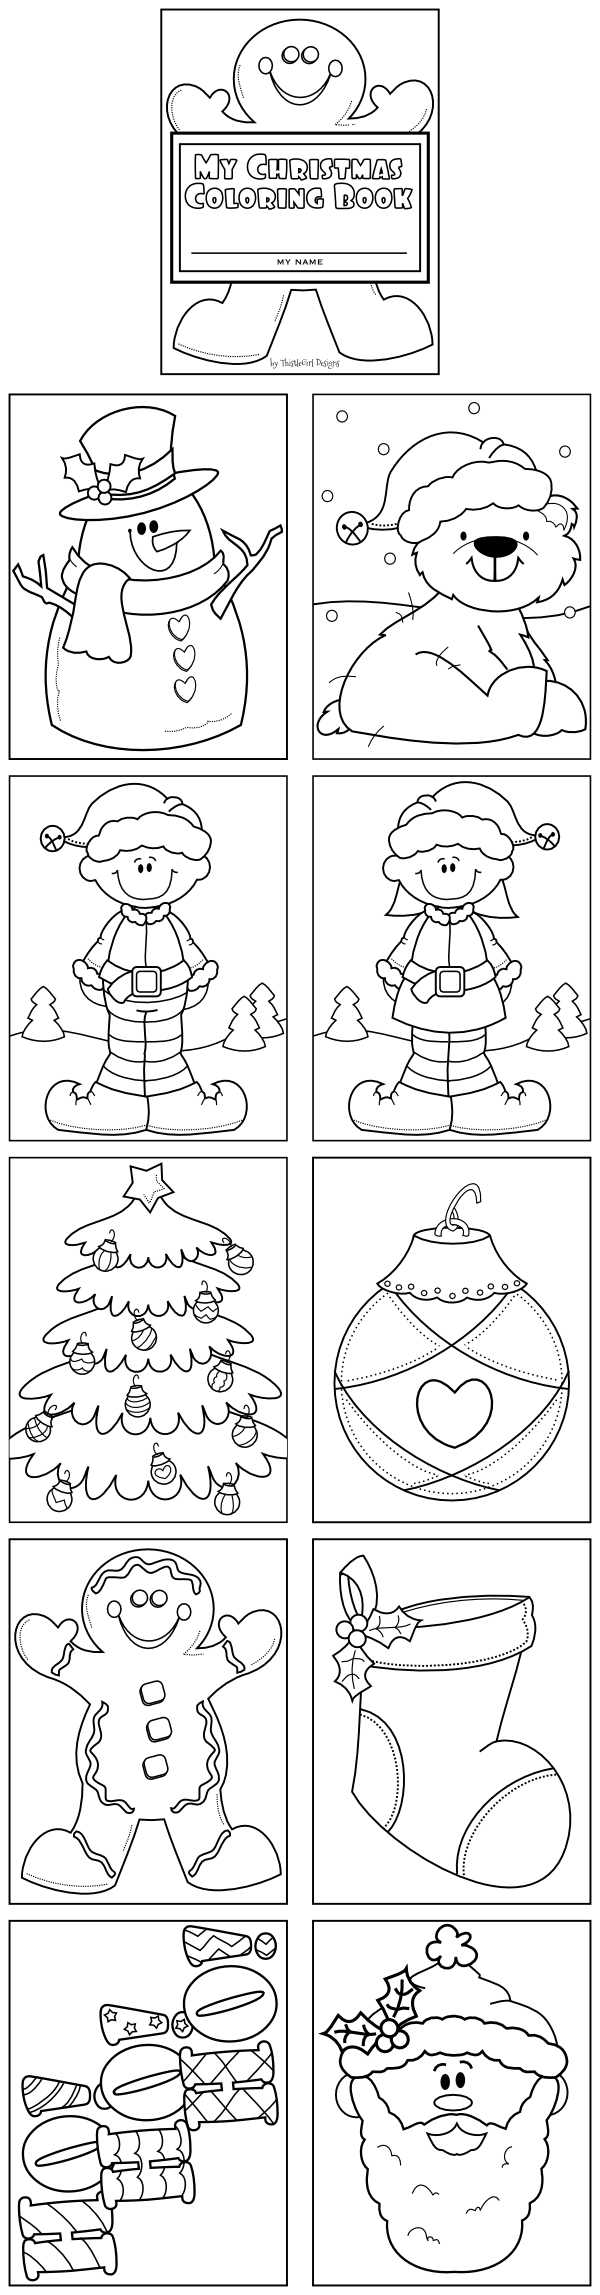 This Coloring Book Es In Pdf Format And Contains Ten Different